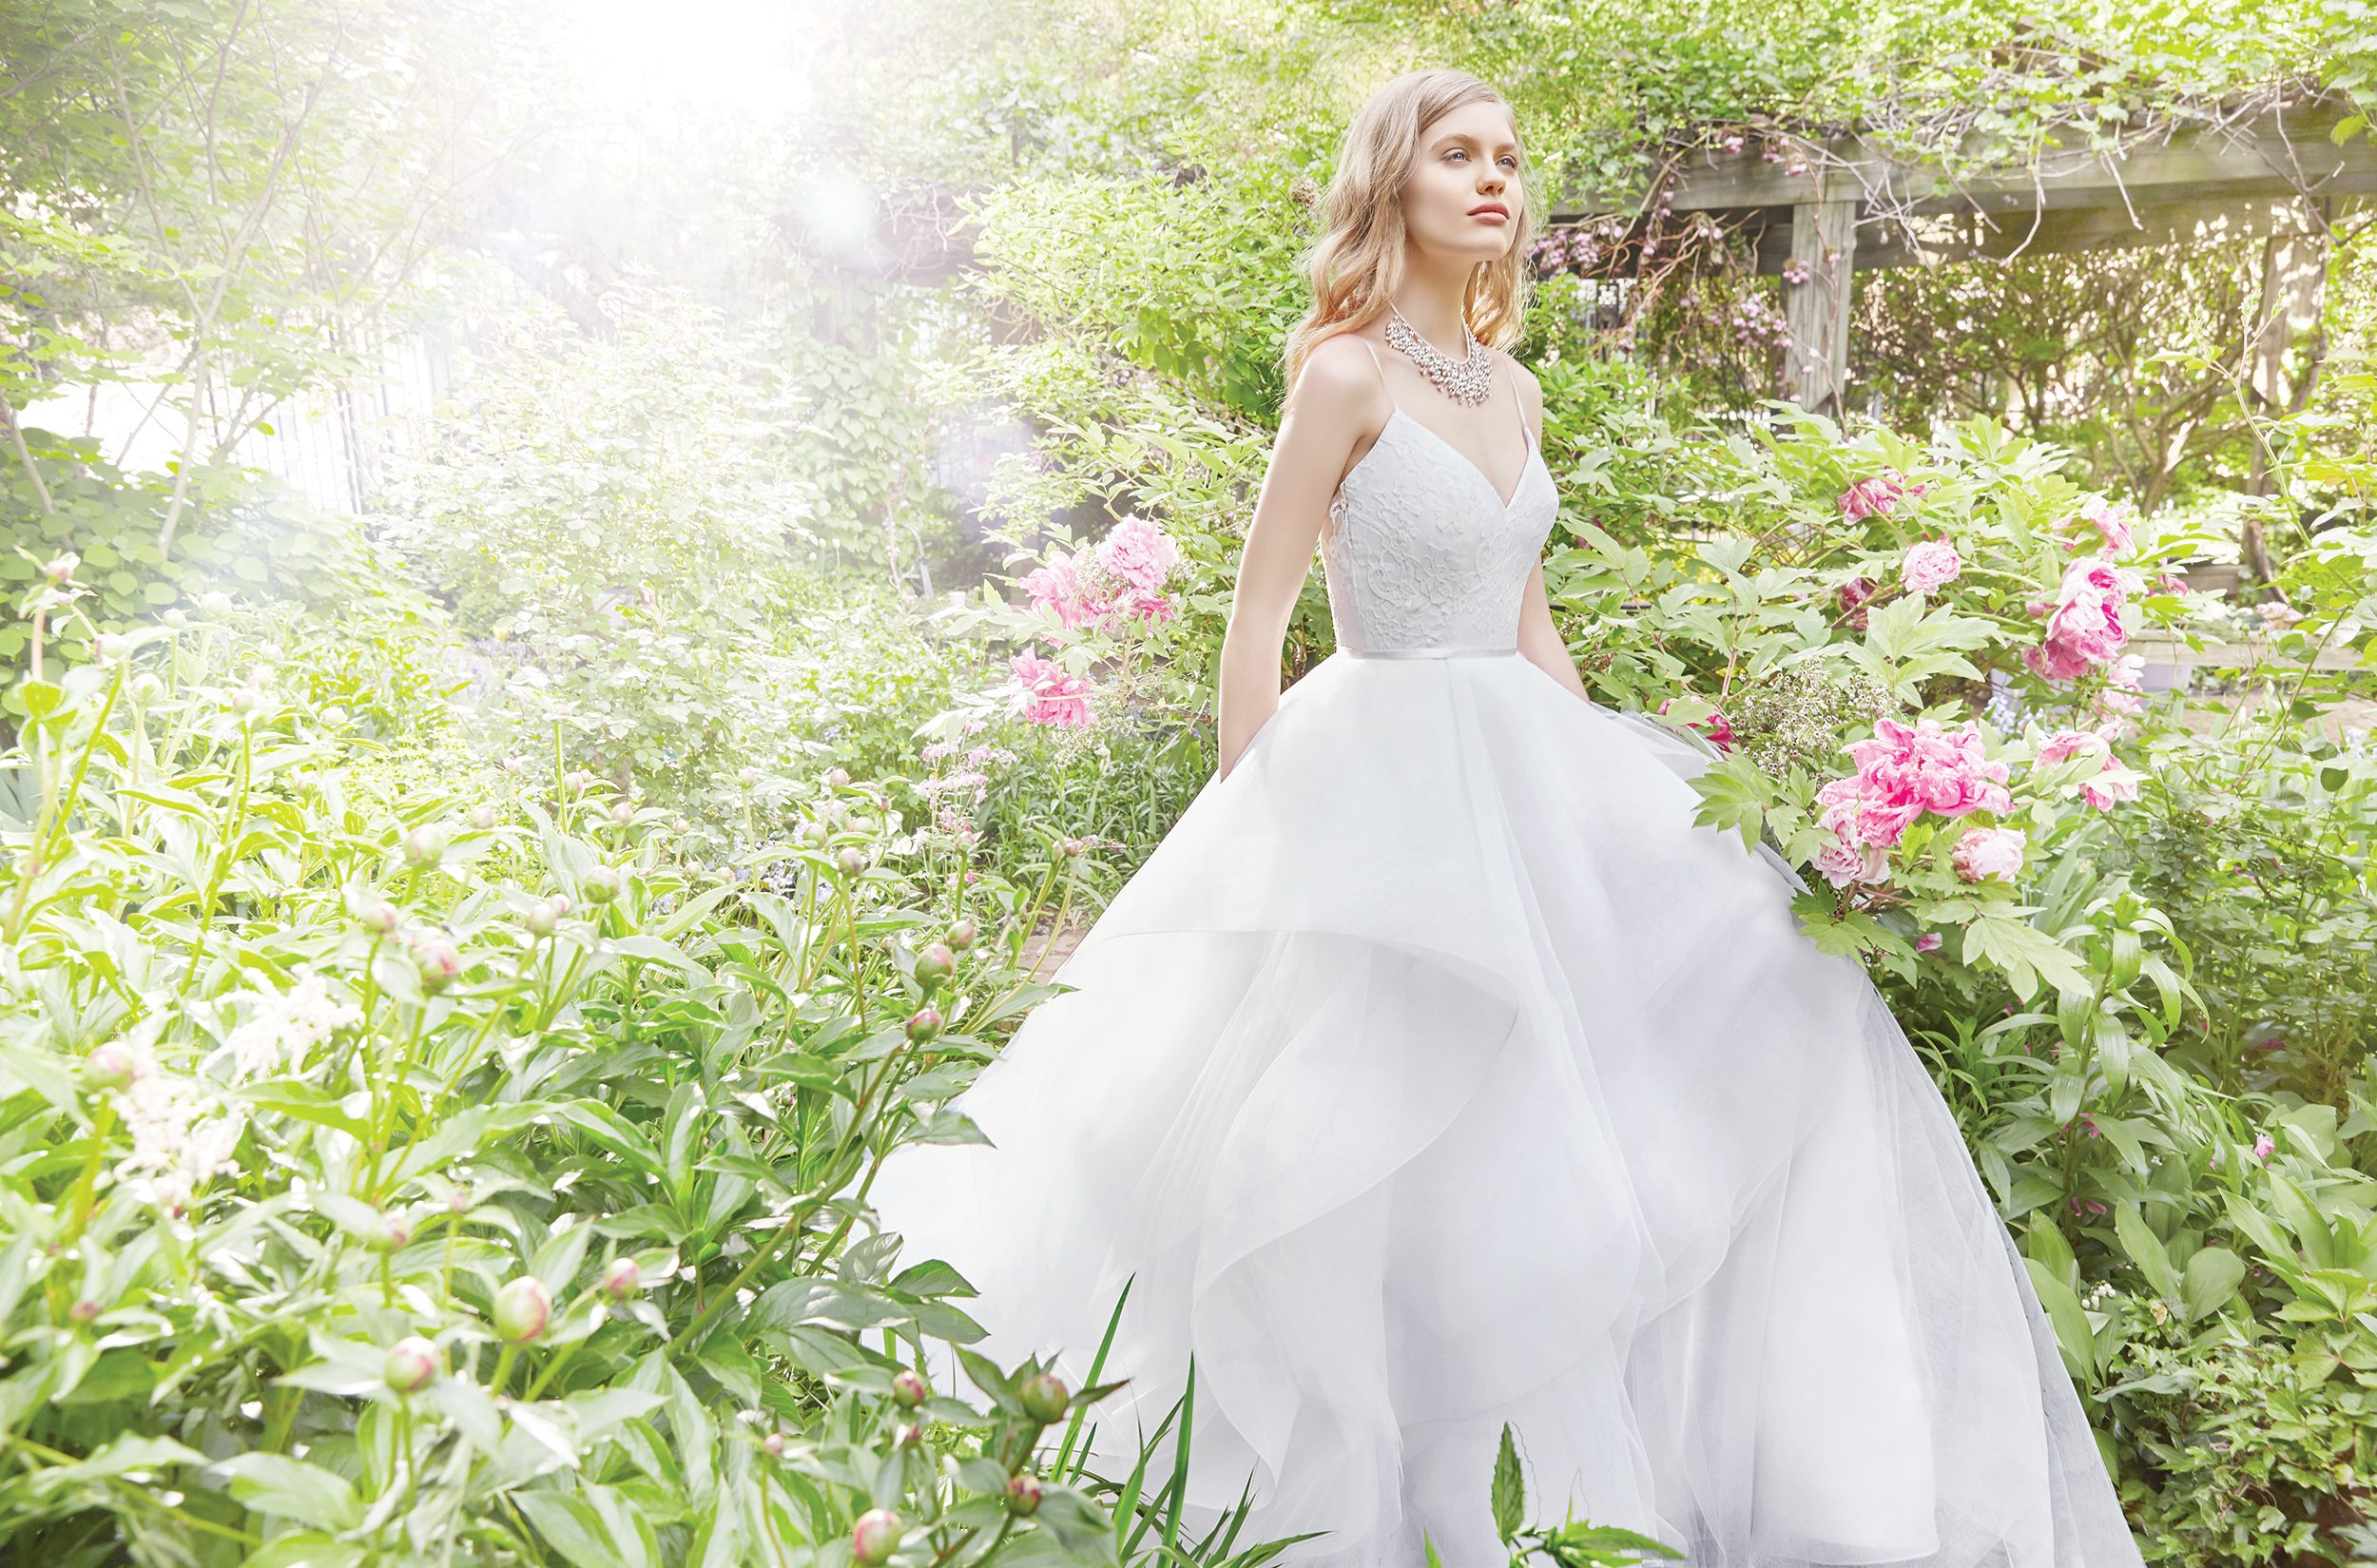 alvina-valenta-bridal-fall-2016-style-9659_2, alvina valenta http://itgirlweddings.com/fall-2016-alvina-valenta-wedding-collection/